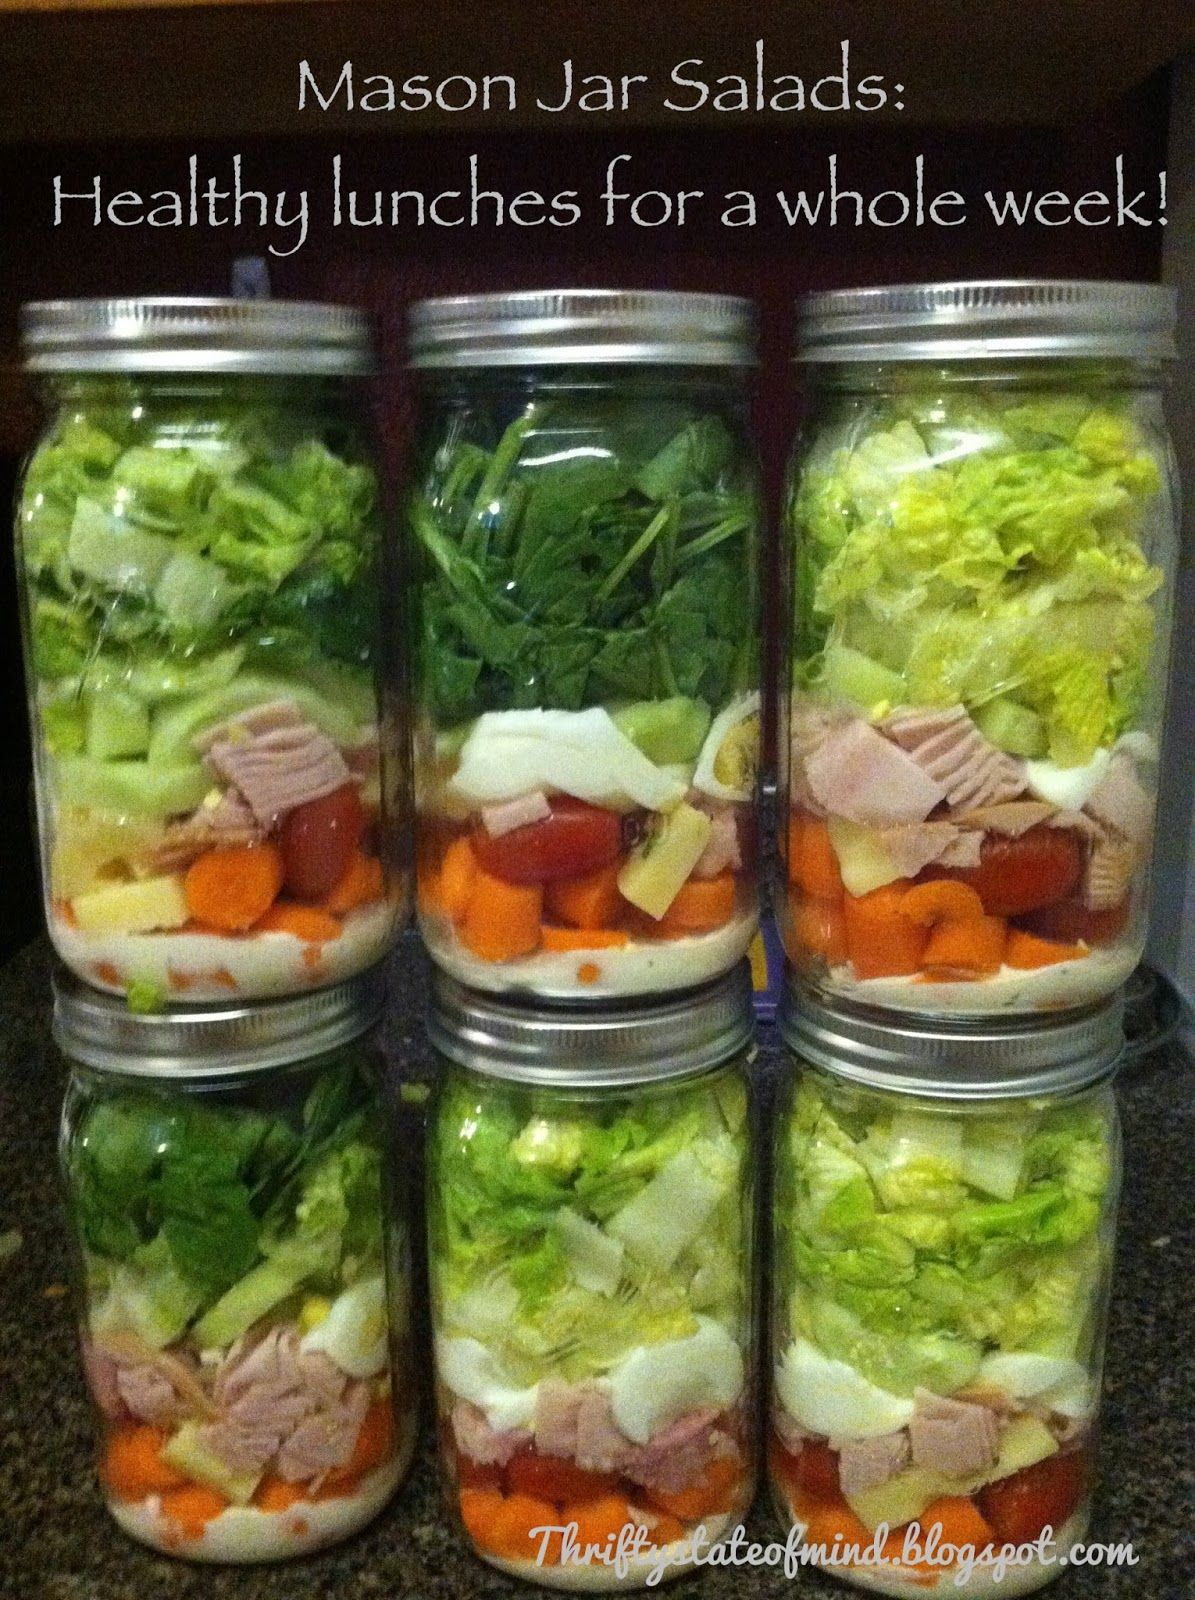 Just Jars Just Another Diy In Paradise How To Mason Jar Salads